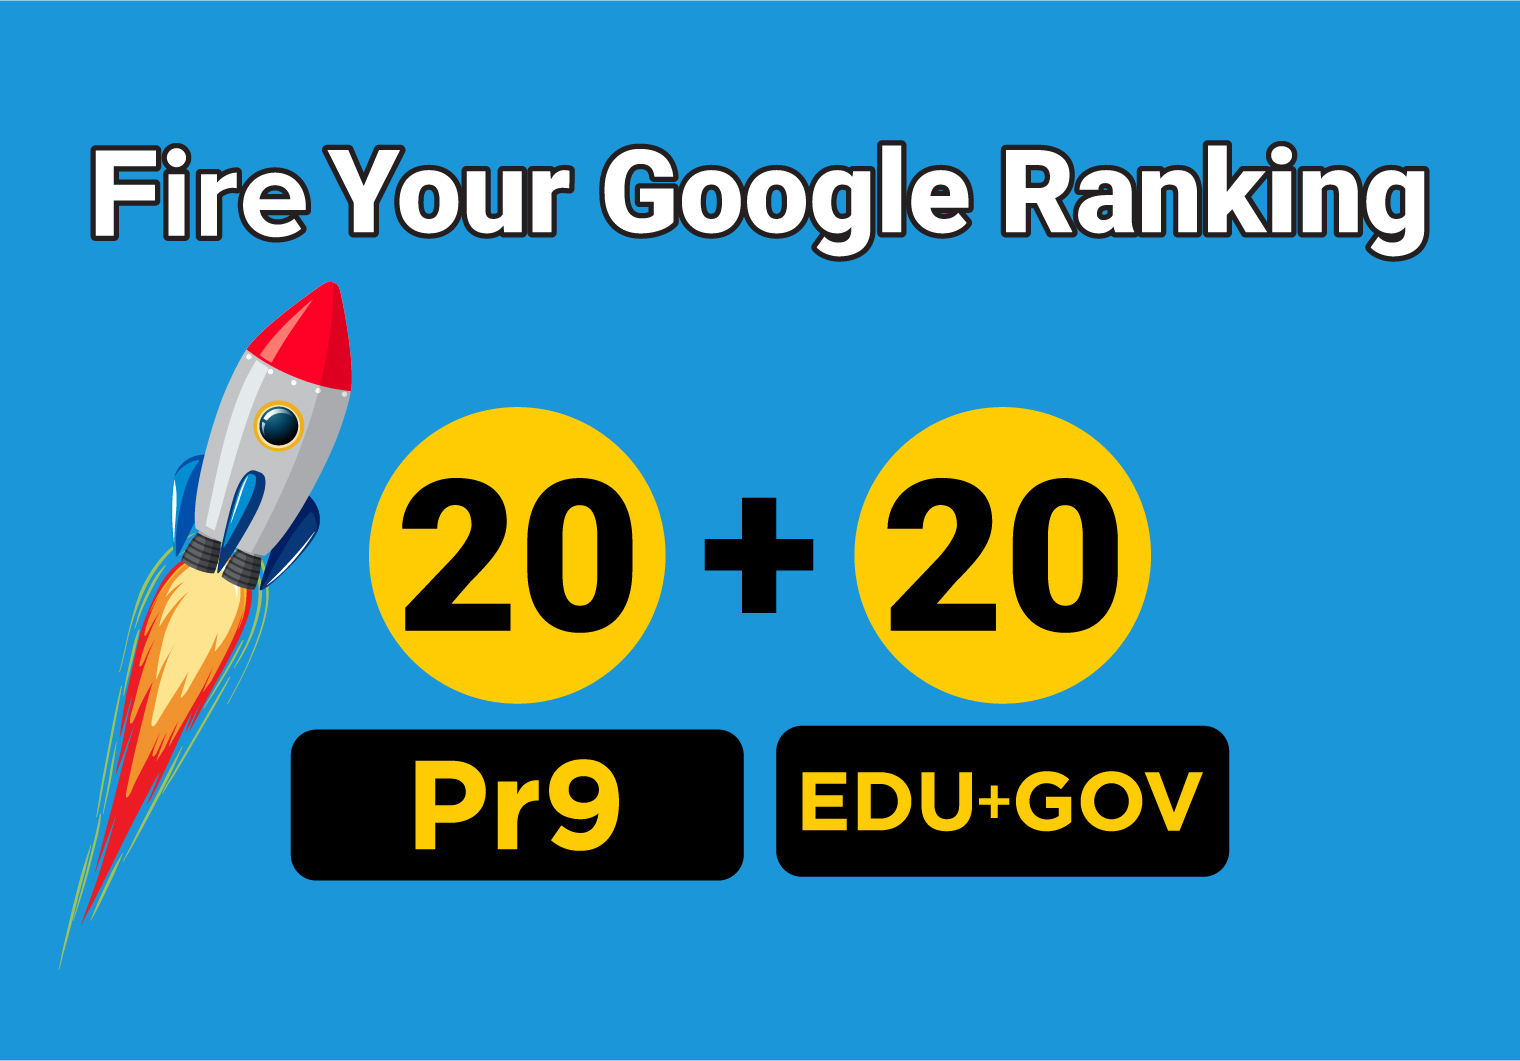 Manually Build 20 PR9 + 20 EDU/GOV High Authority Permanent Backlinks - Fire Your Google Ranking